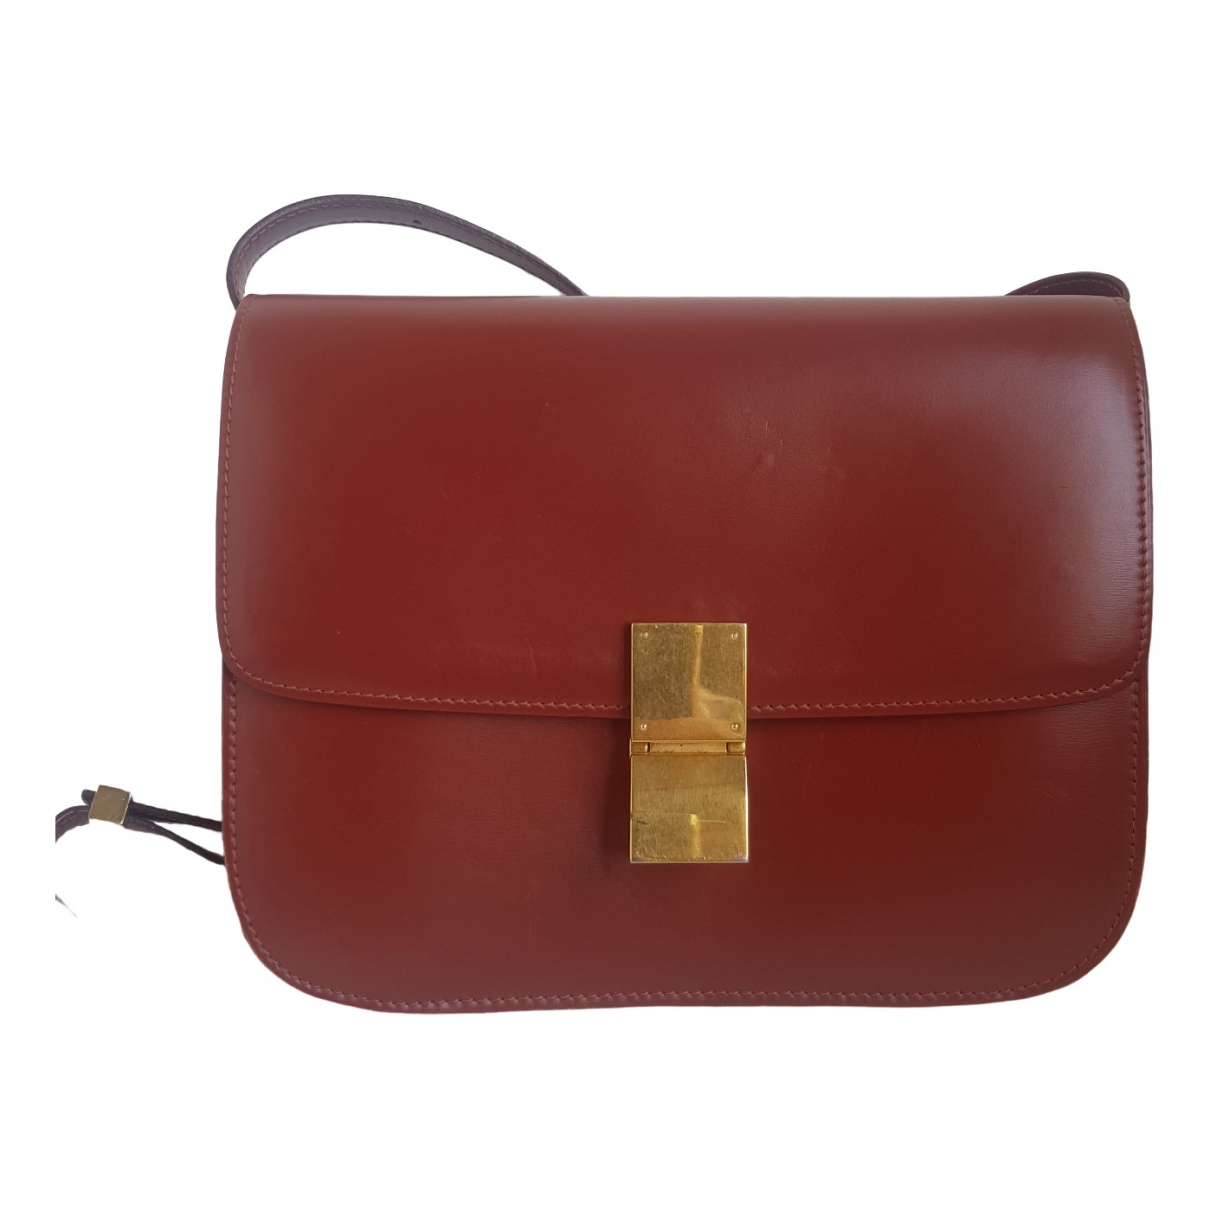 Celine Classic Burgundy Leather handbag for Women \N